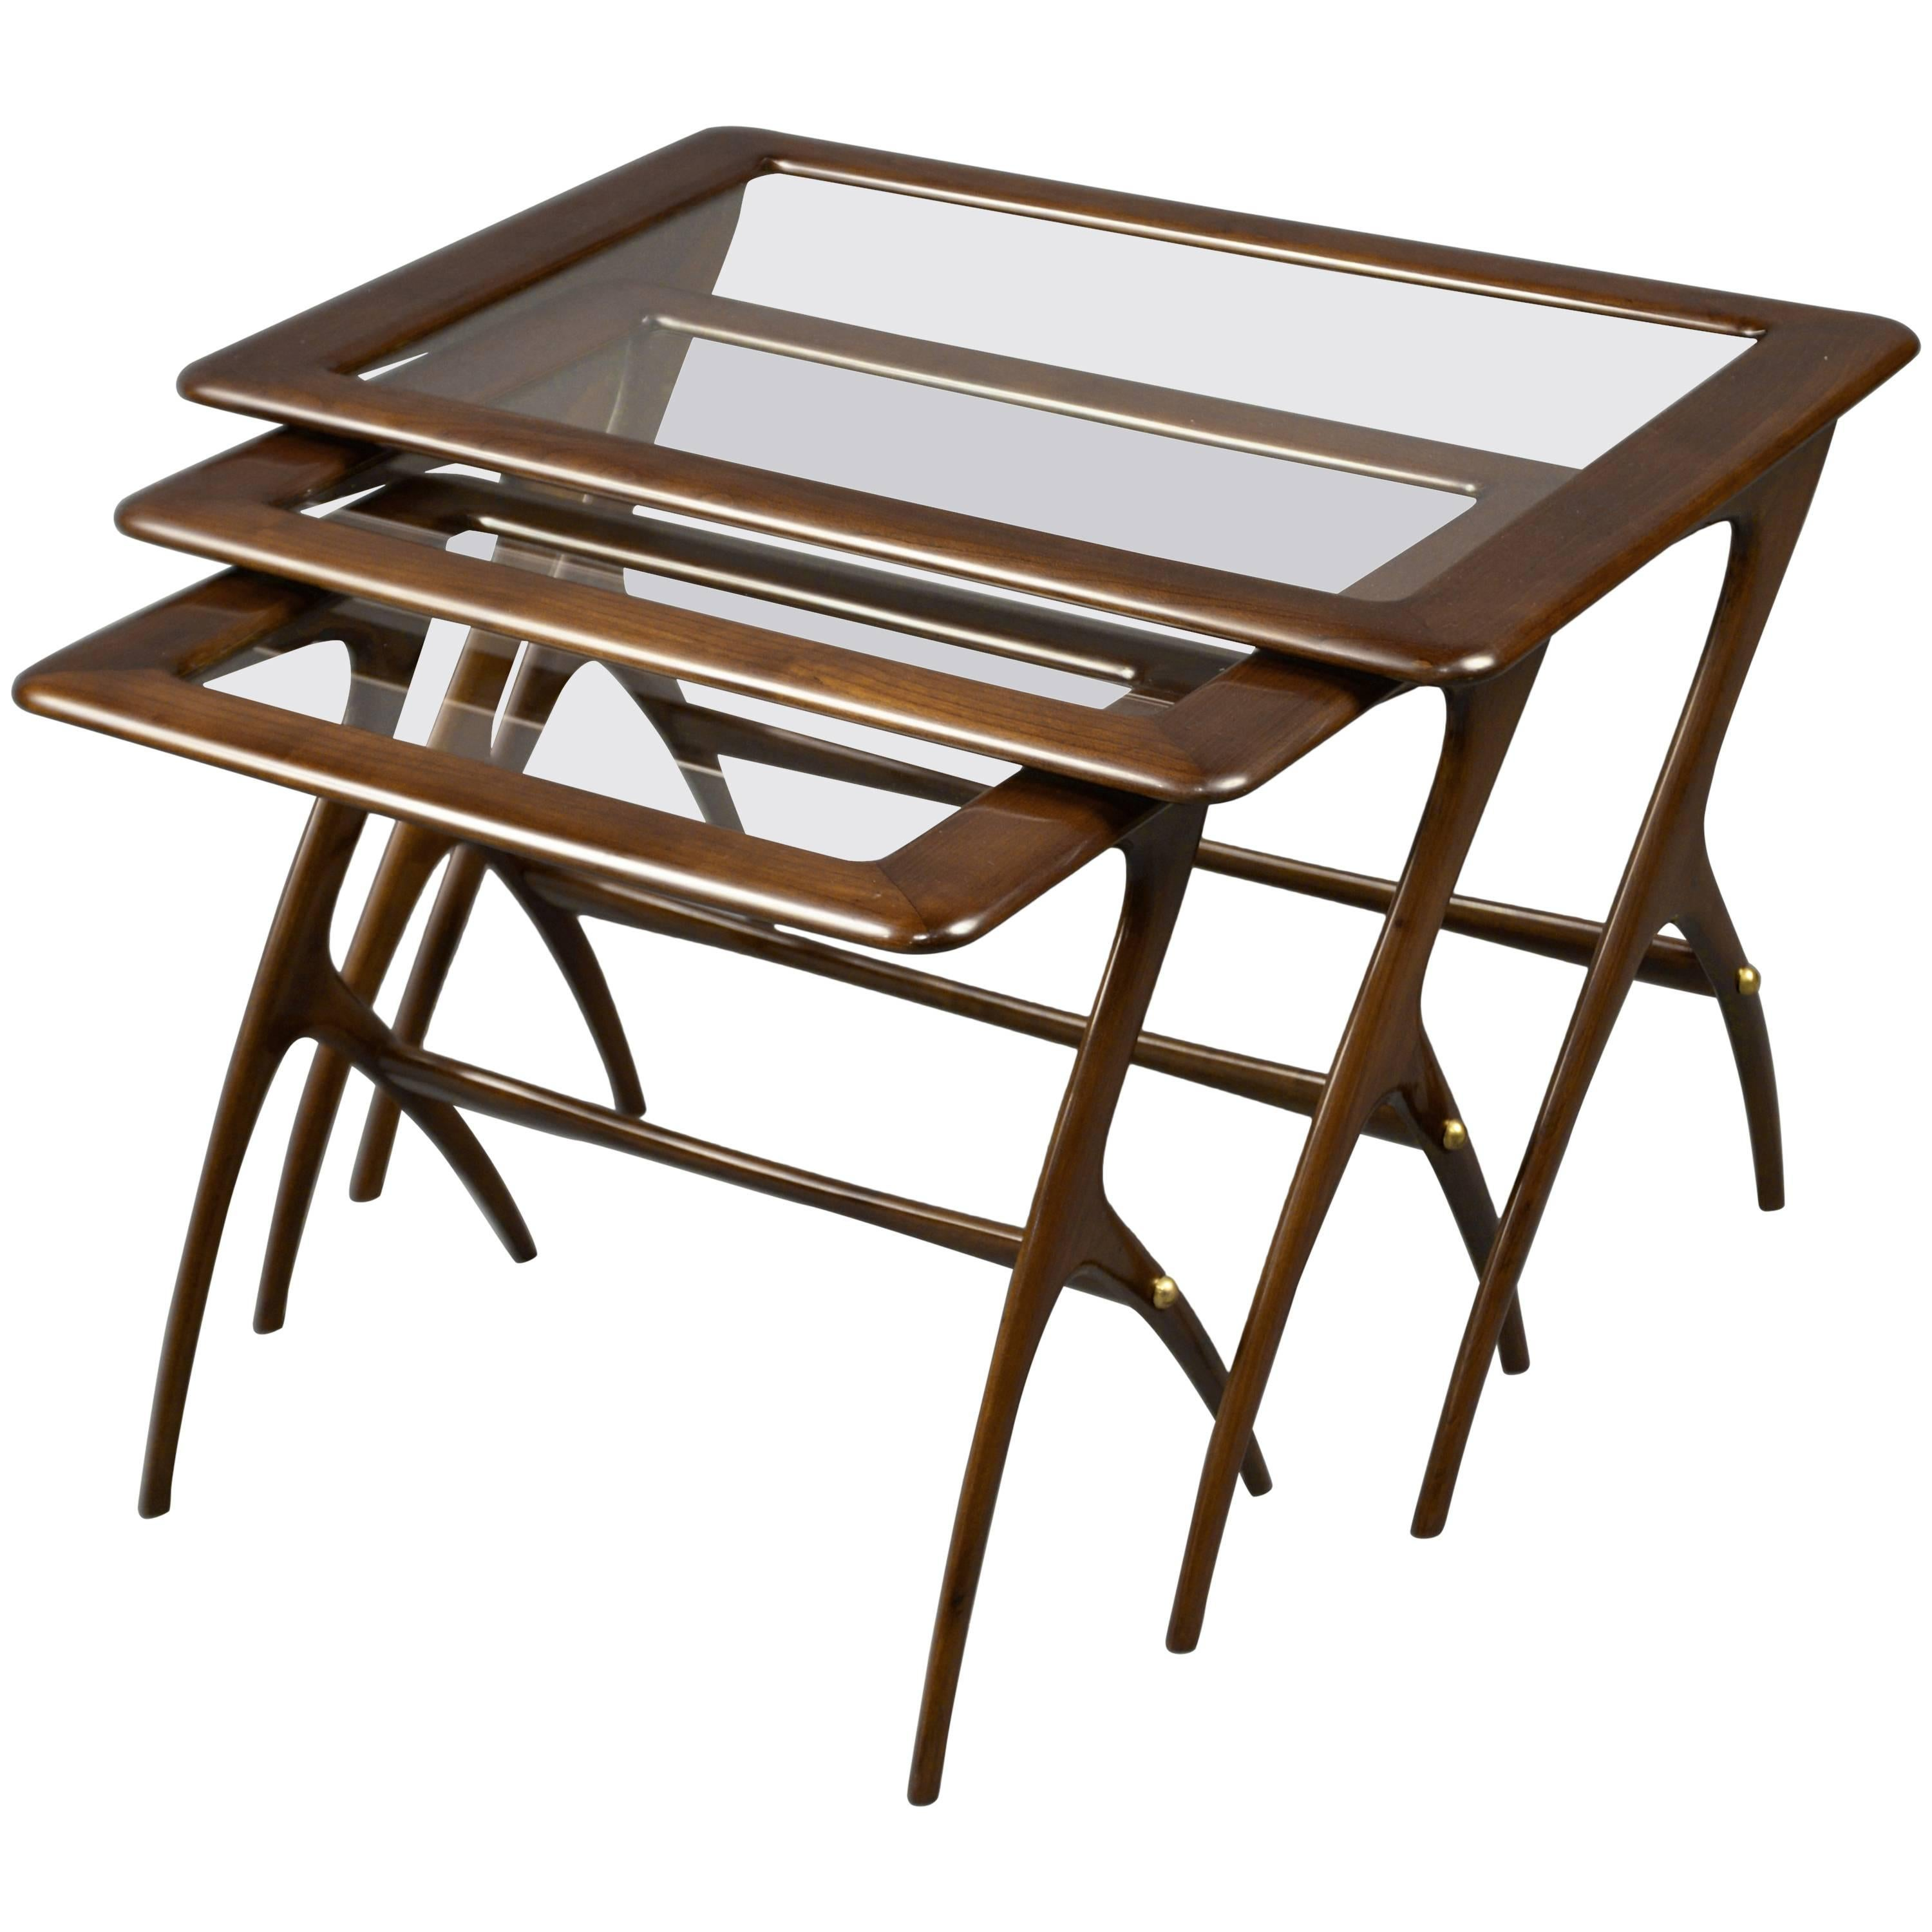 Nest of Three Tables Attributed to Ice Parisi, Italy, 1950s